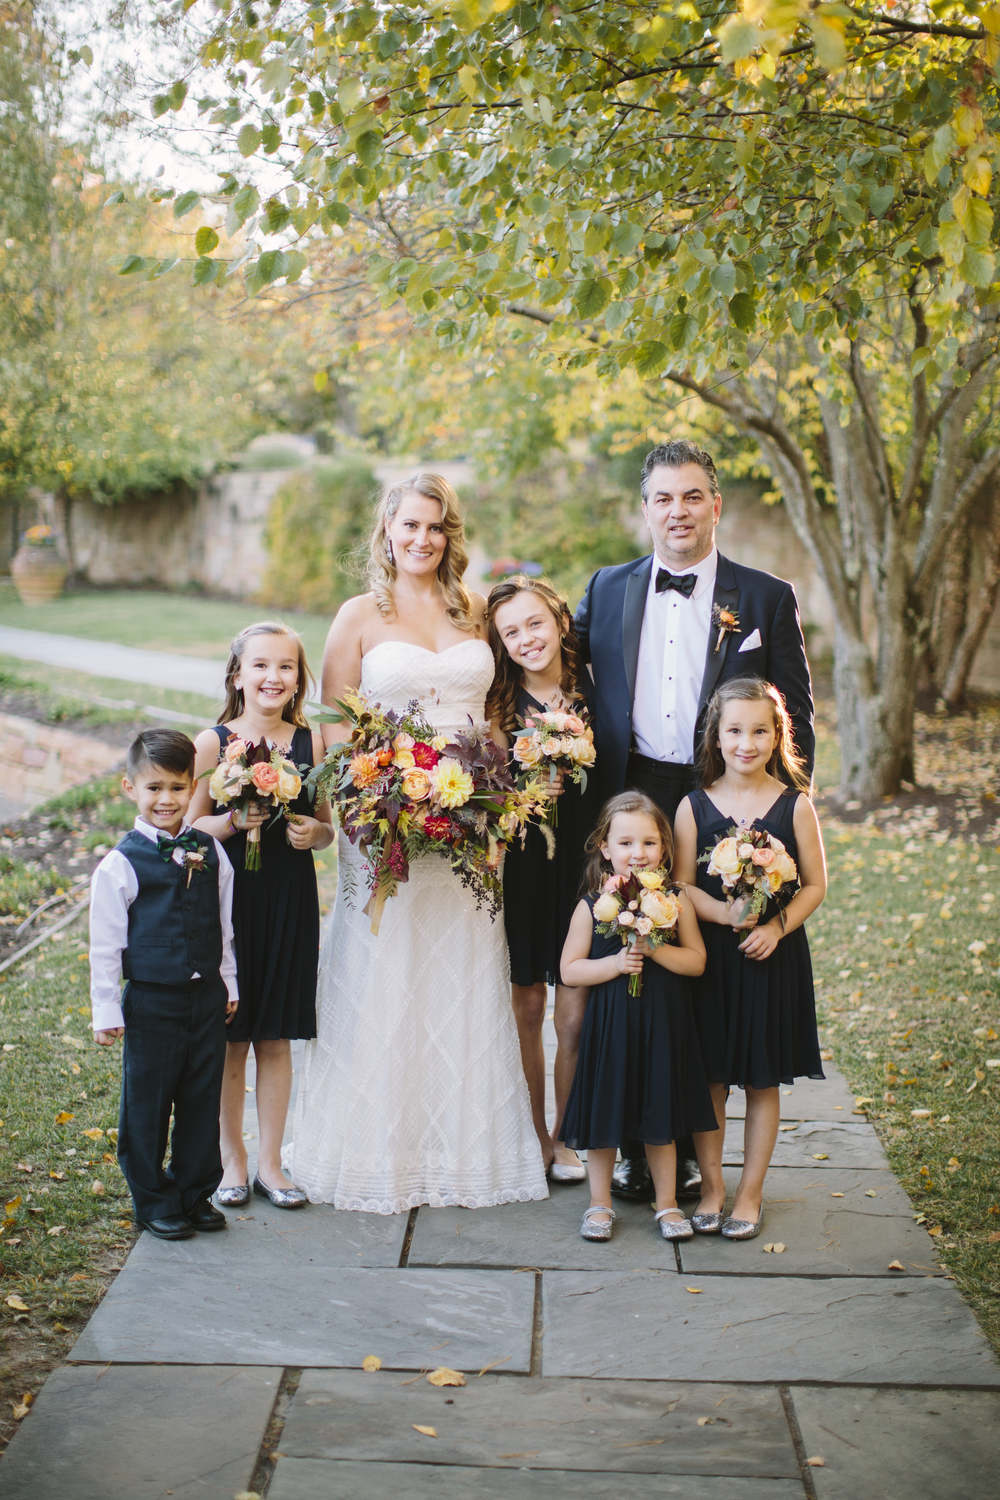 """Todd's children made up the bridal party for the couple's wedding. The girls carried small bouquets of roses, spray roses, seeded eucalyptus and """""""". All bridal parties have sentimental value, but this gesture seemed particularly sweet, and we are so happy for this family!"""